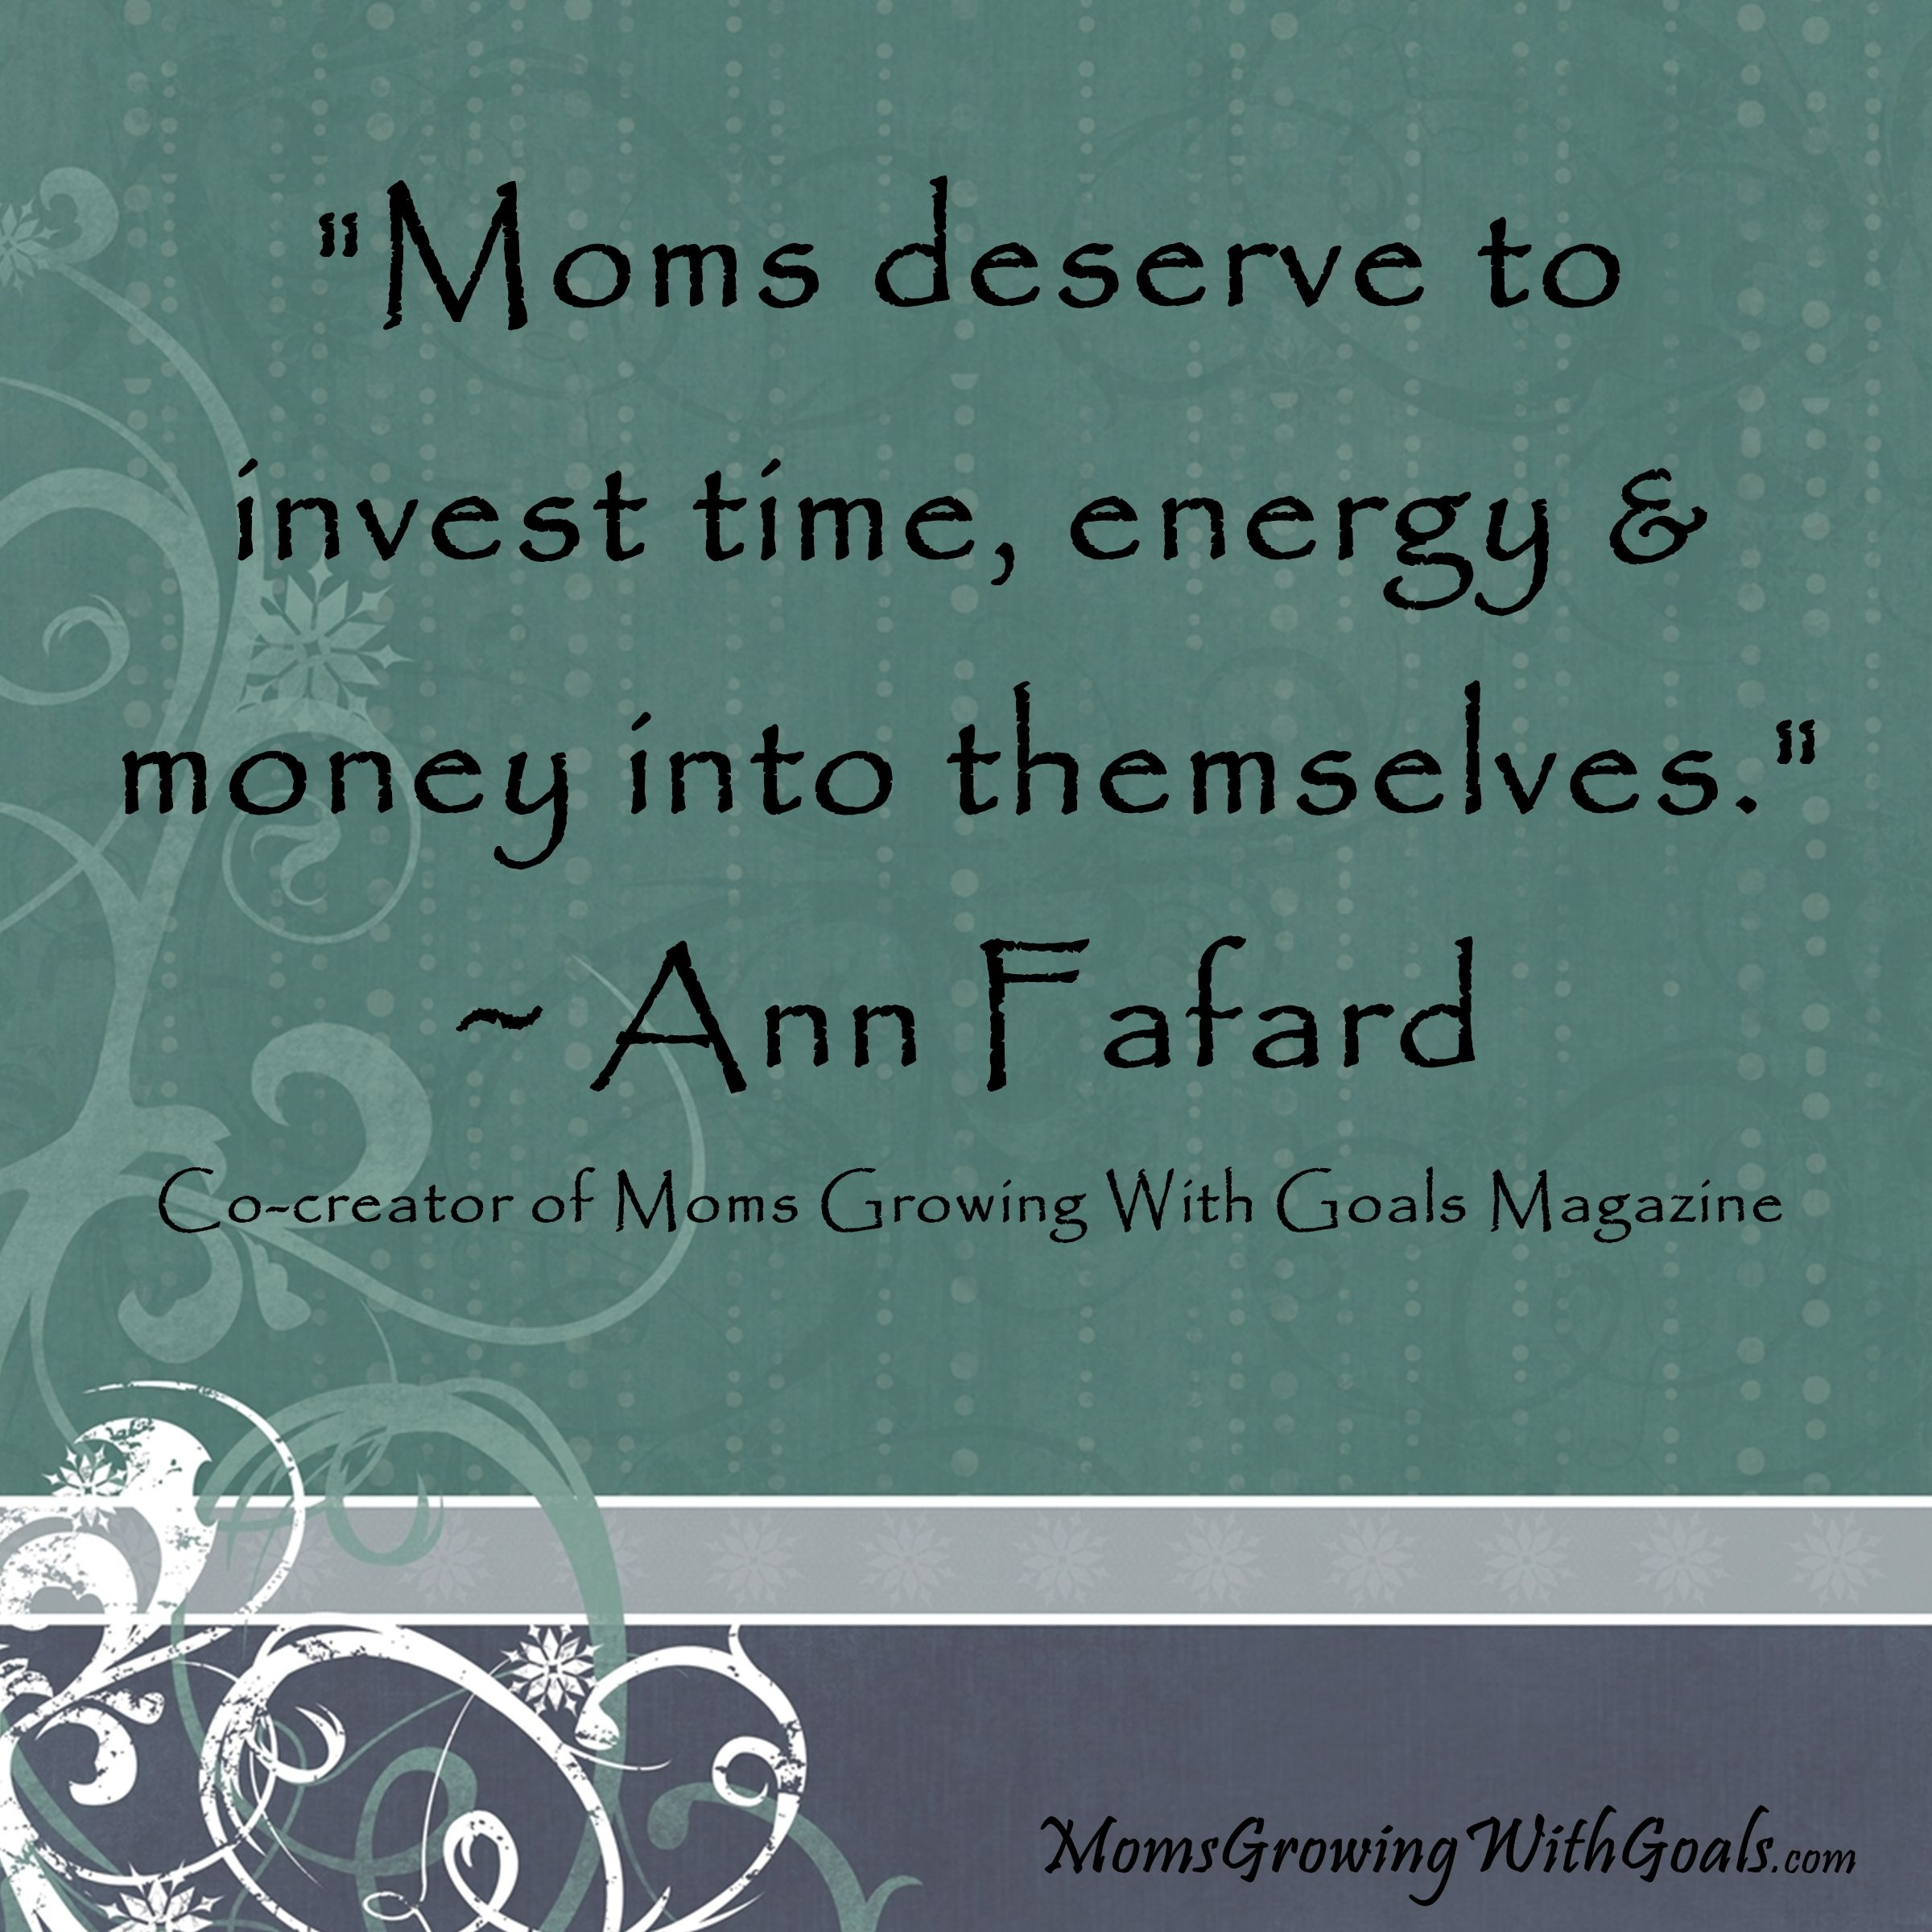 Quotes For Moms Stressedout Moms Need To Take Care Of Themselves Too